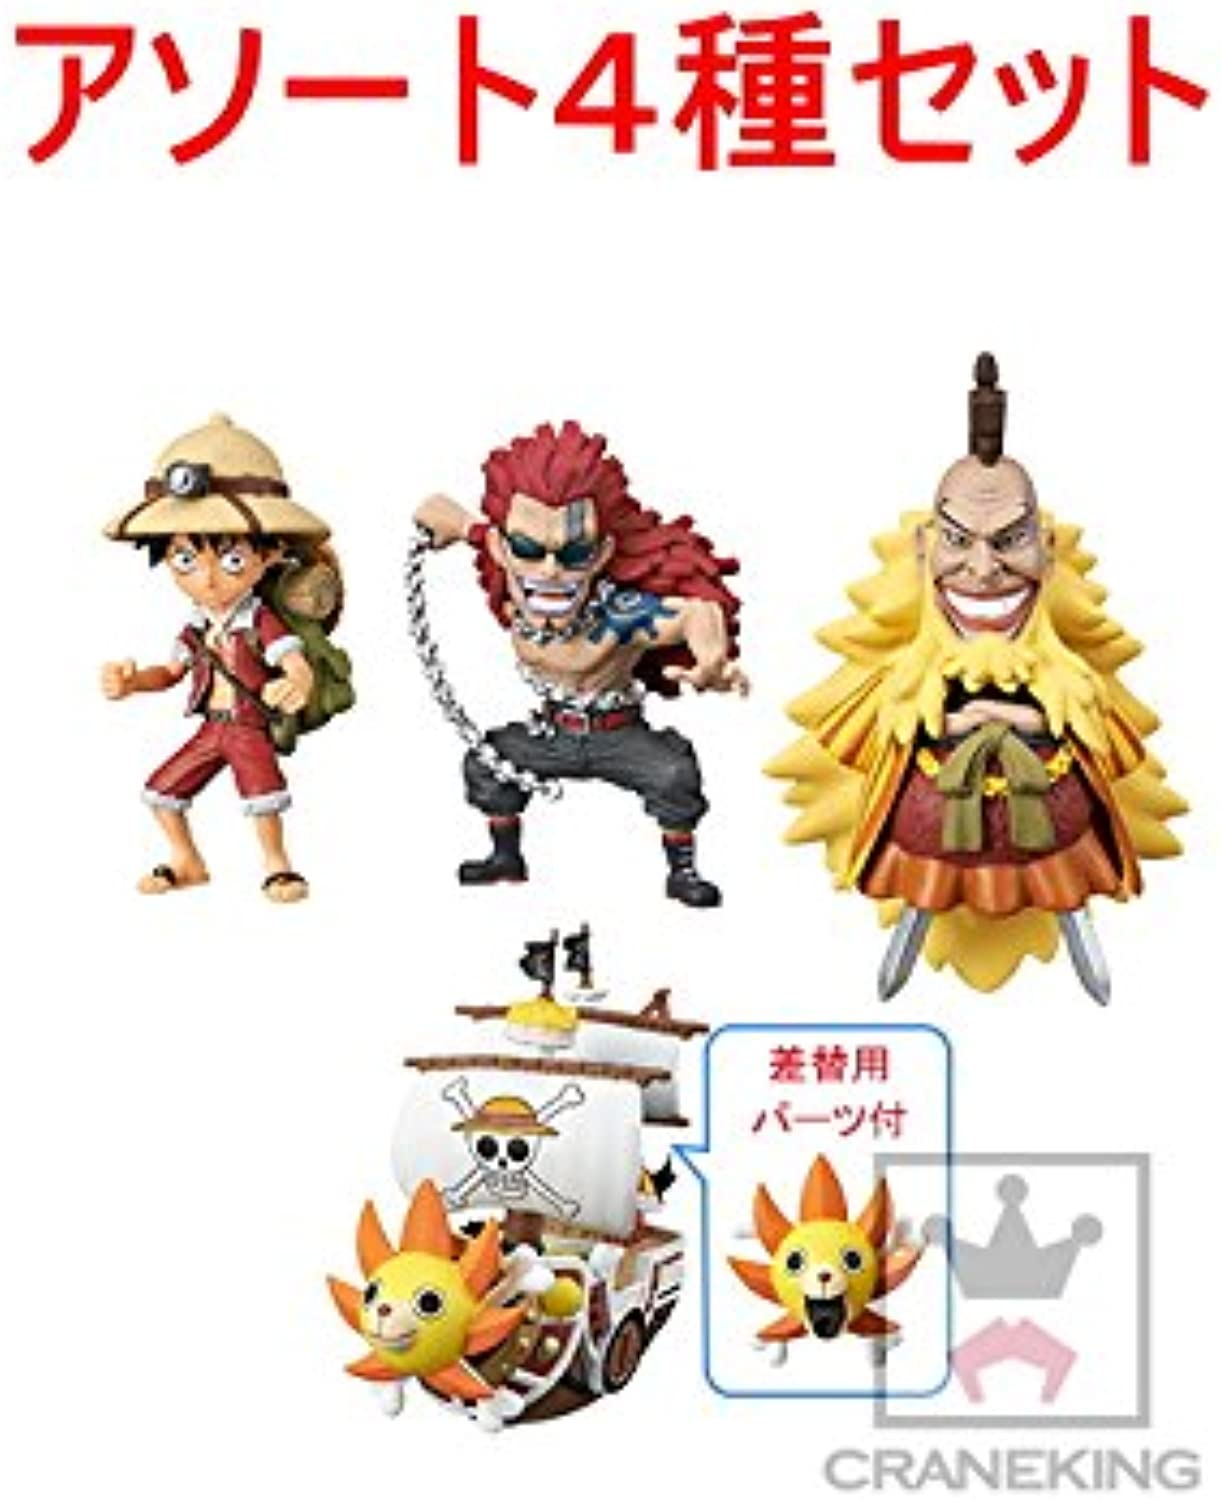 ONE PIECE World Collectable figures Treasure rally Shiki Sunny ver 4 Set of